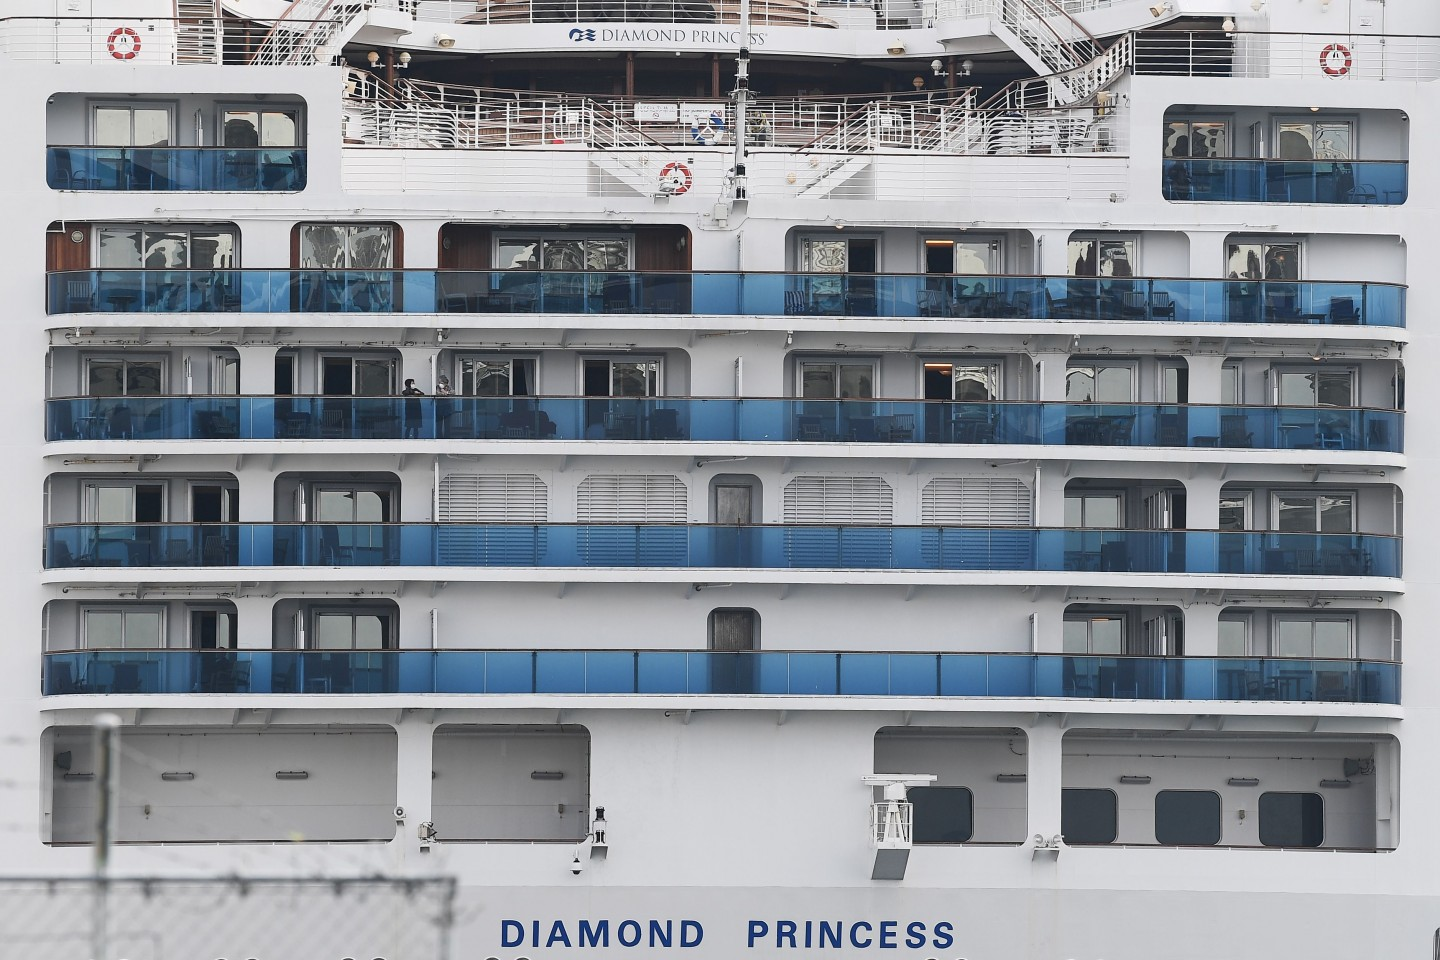 The Diamond Princess cruise ship, with around 3,600 people quarantined onboard due to fears of Covid-19, is seen at the Daikoku Pier Cruise Terminal in Yokohama port on 14 February 2020. (Charly Triballeau/AFP)